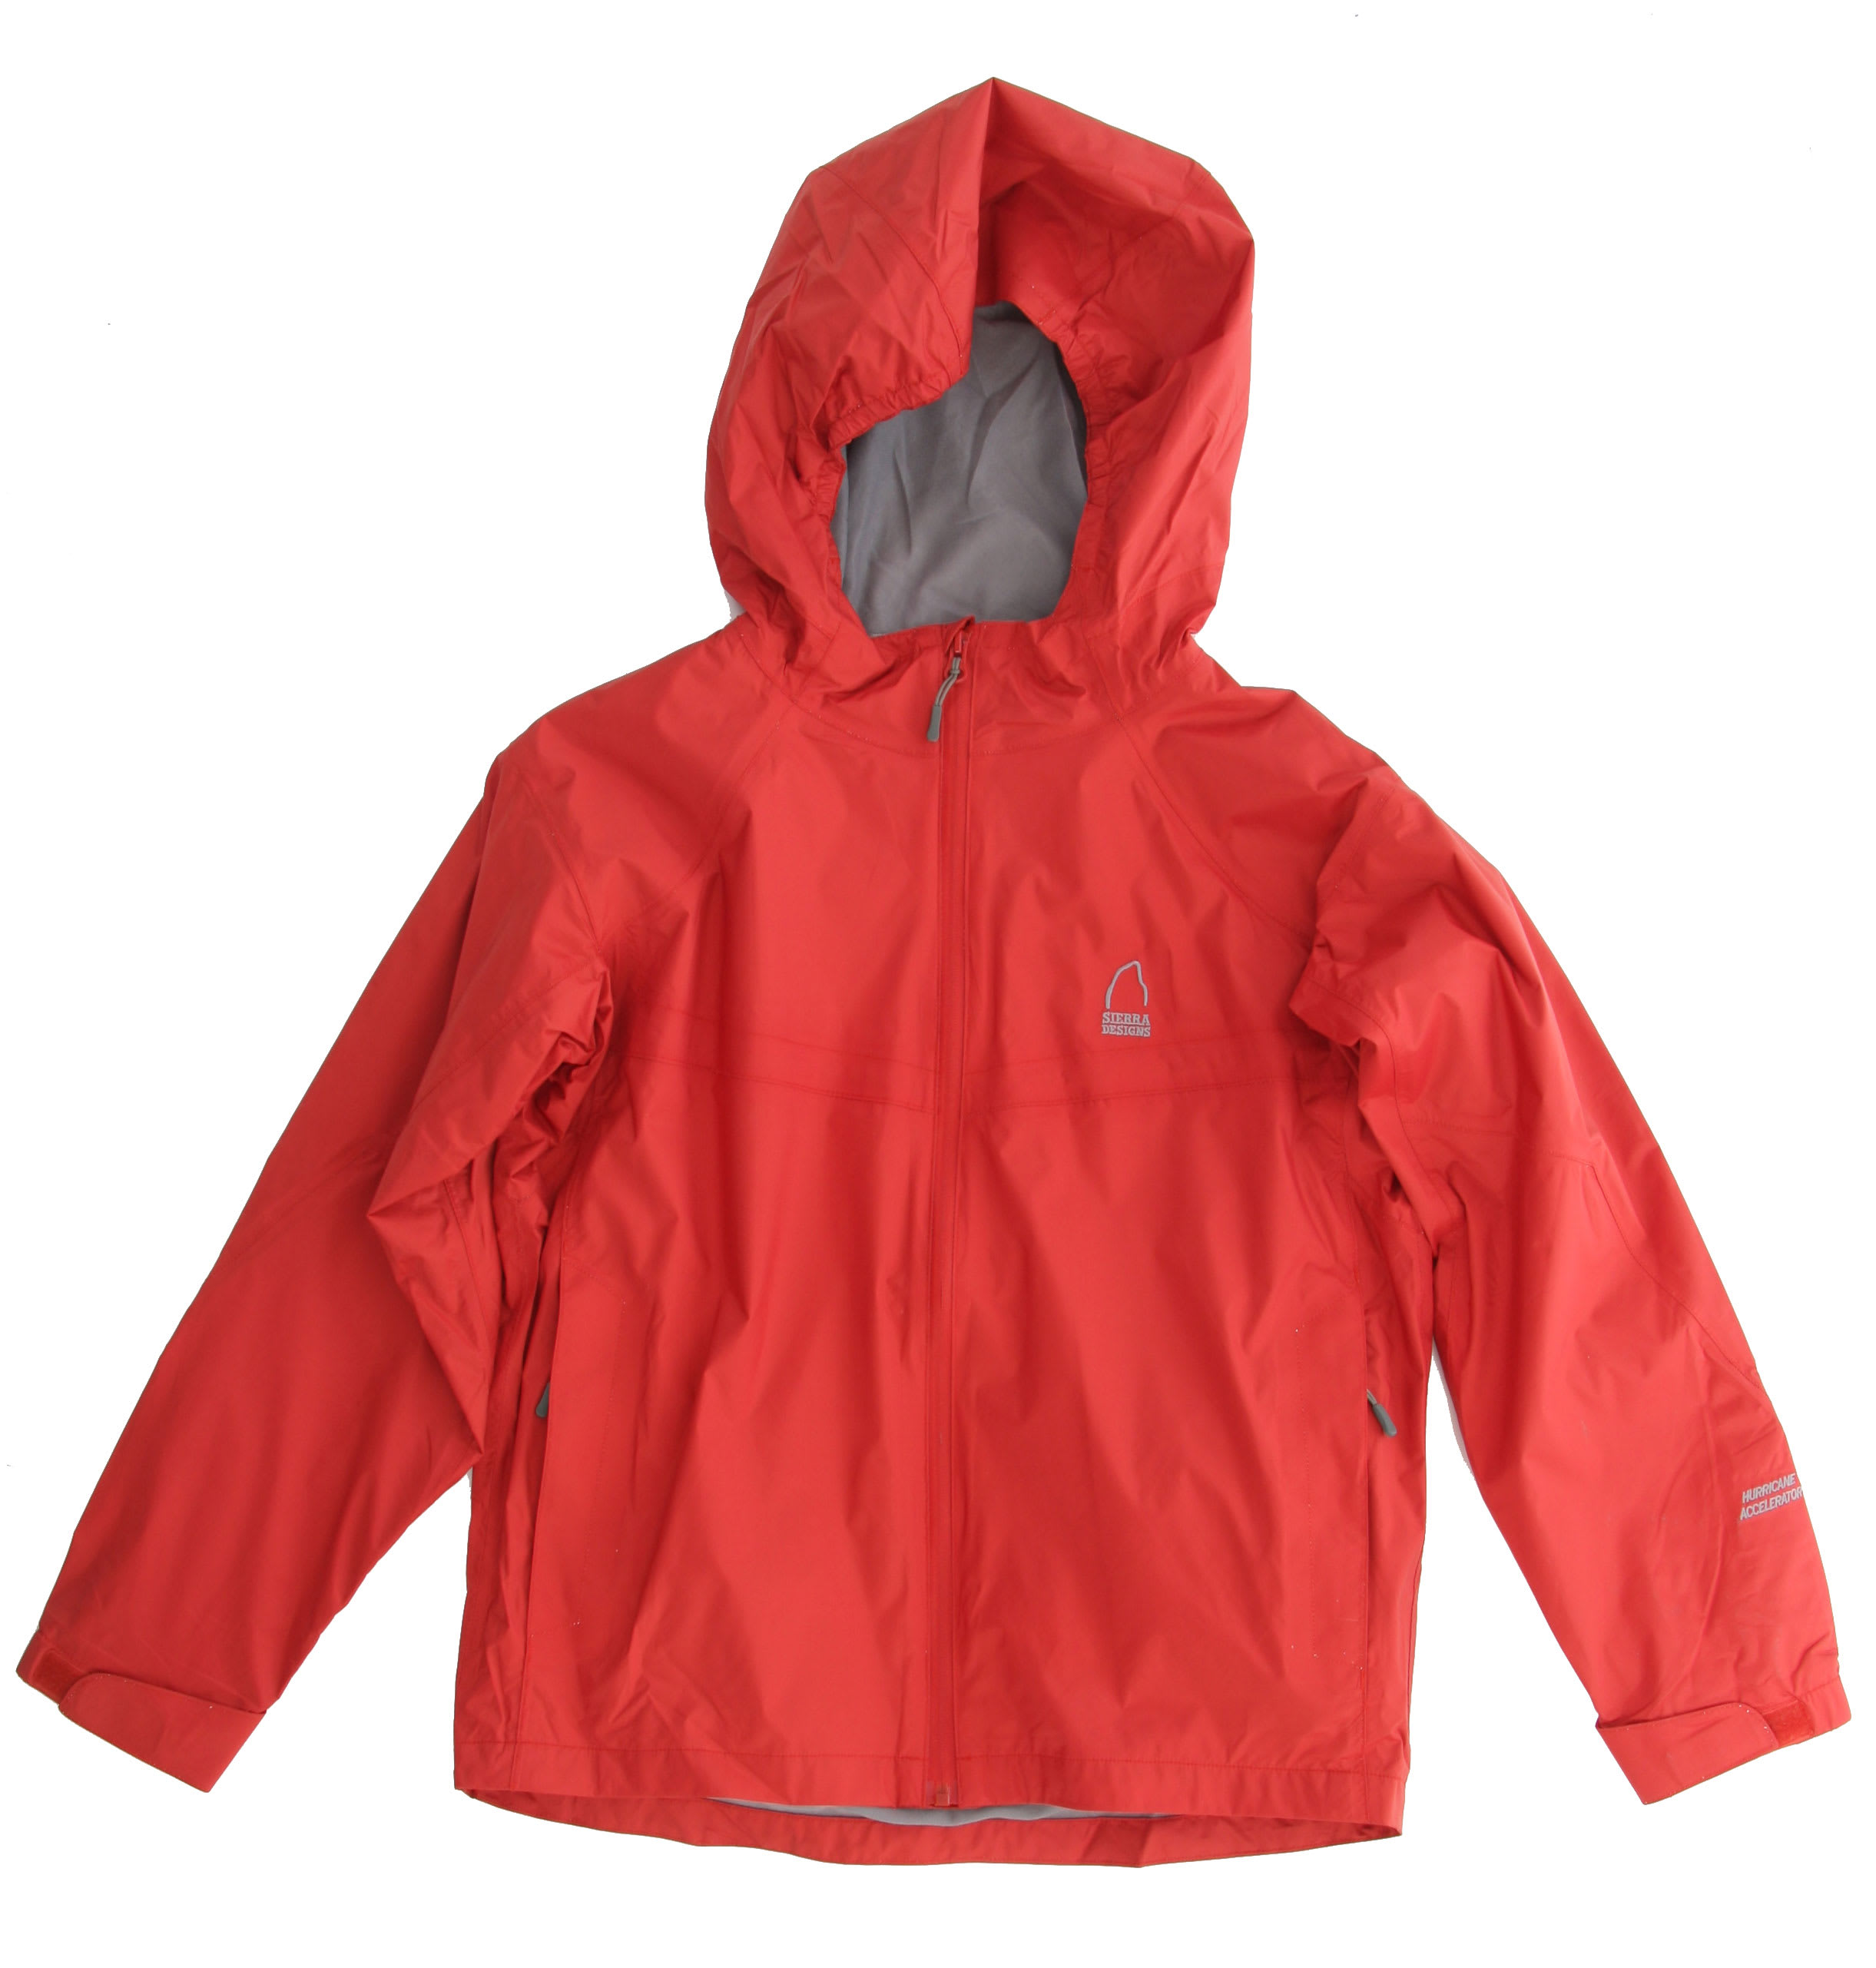 Shop for Sierra Designs Hurricane Accelerator Shell Jacket Brick - Kid's